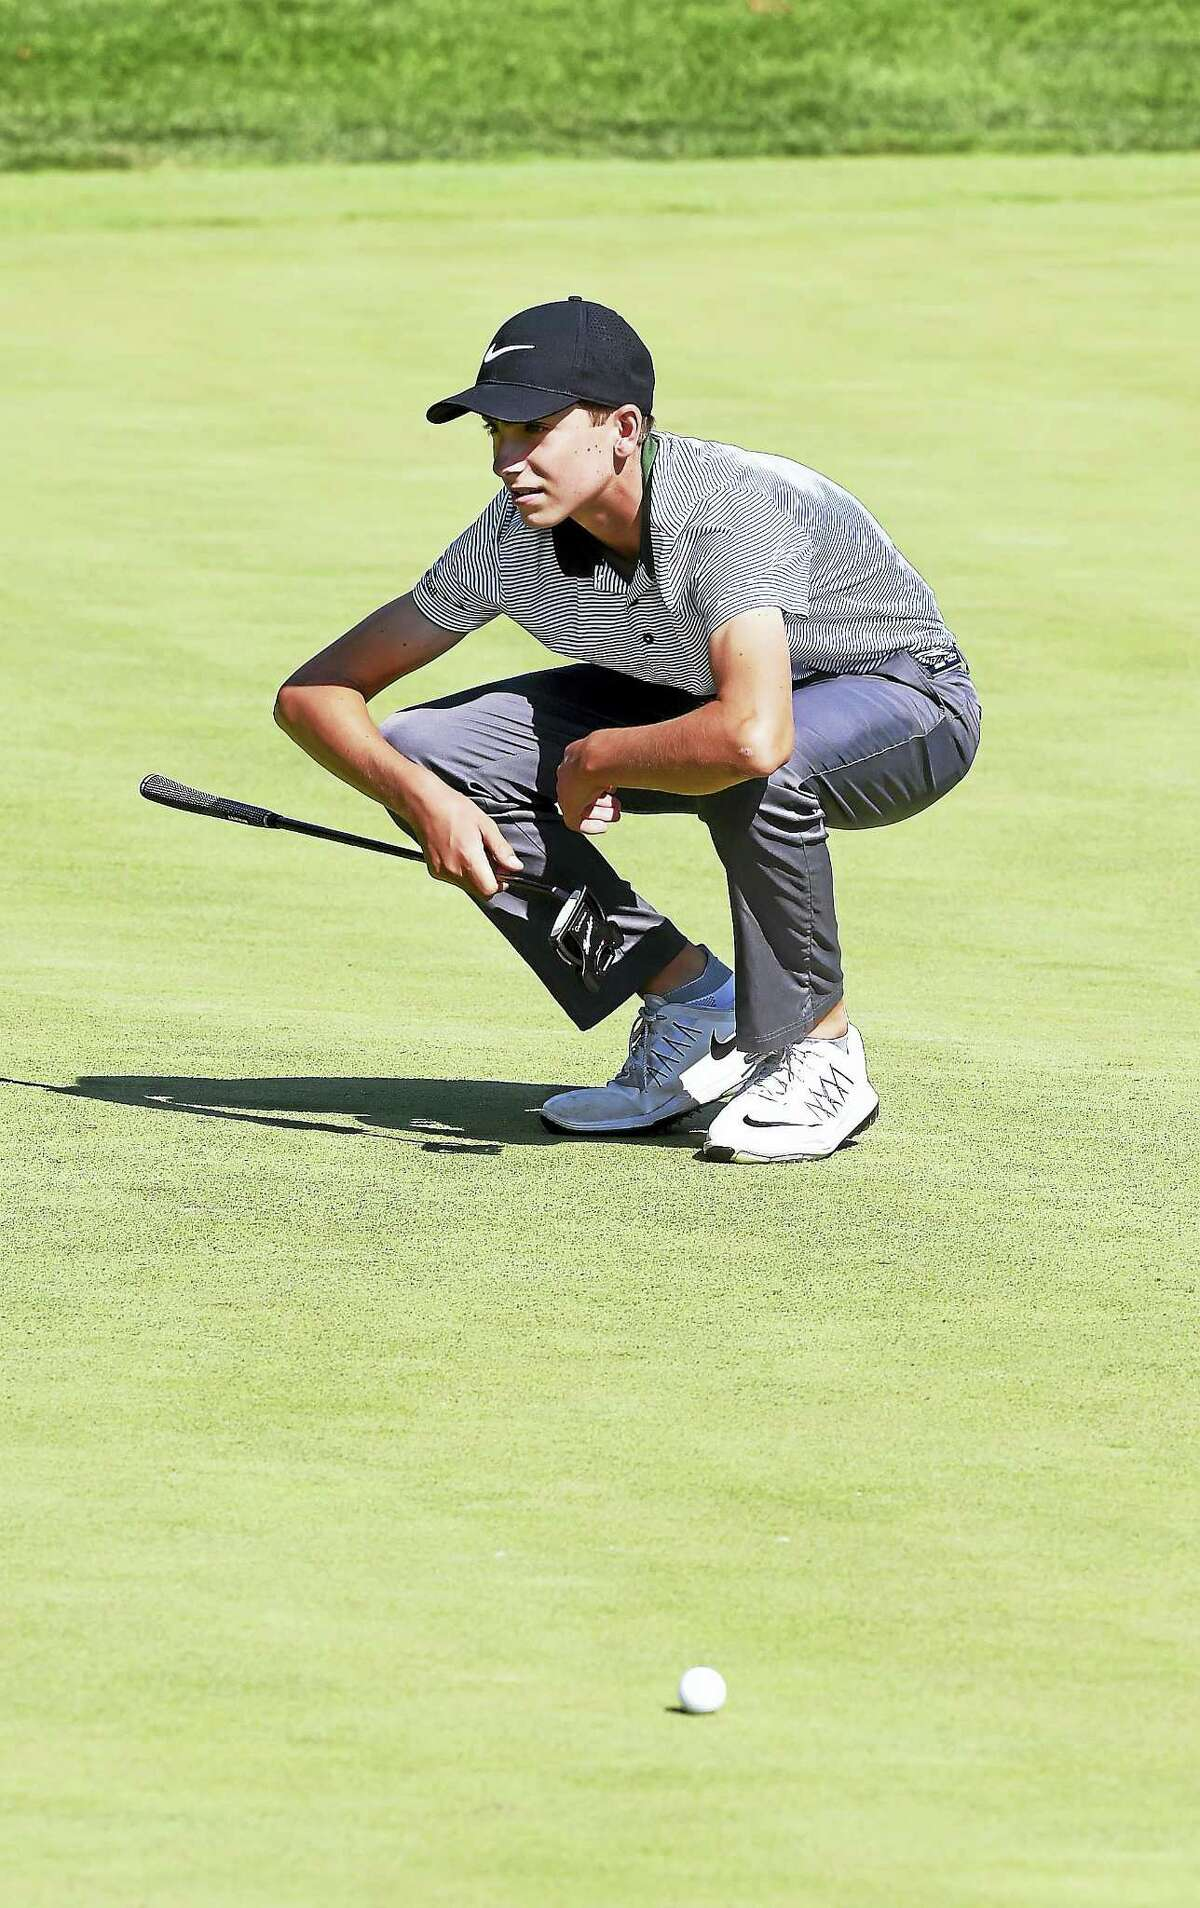 Ben James of Milford lines up a putt on the ninth hole of the 16th Northern Junior Championship.